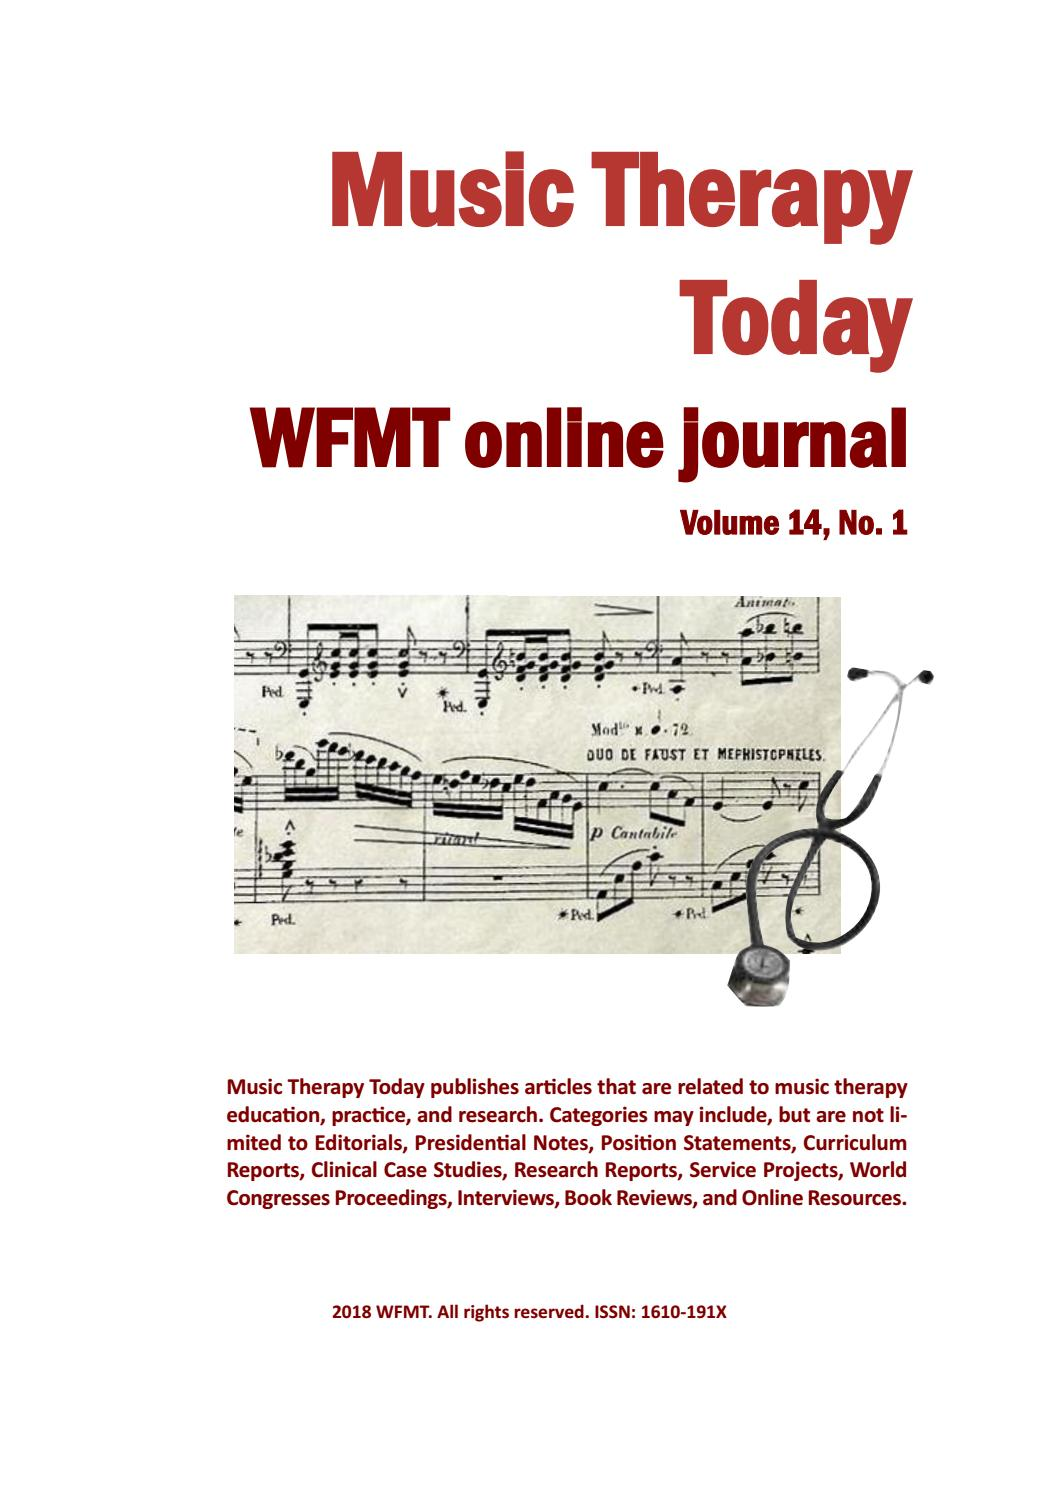 Music Therapy Today WFMT Online Journal Volume 14 No 1 By